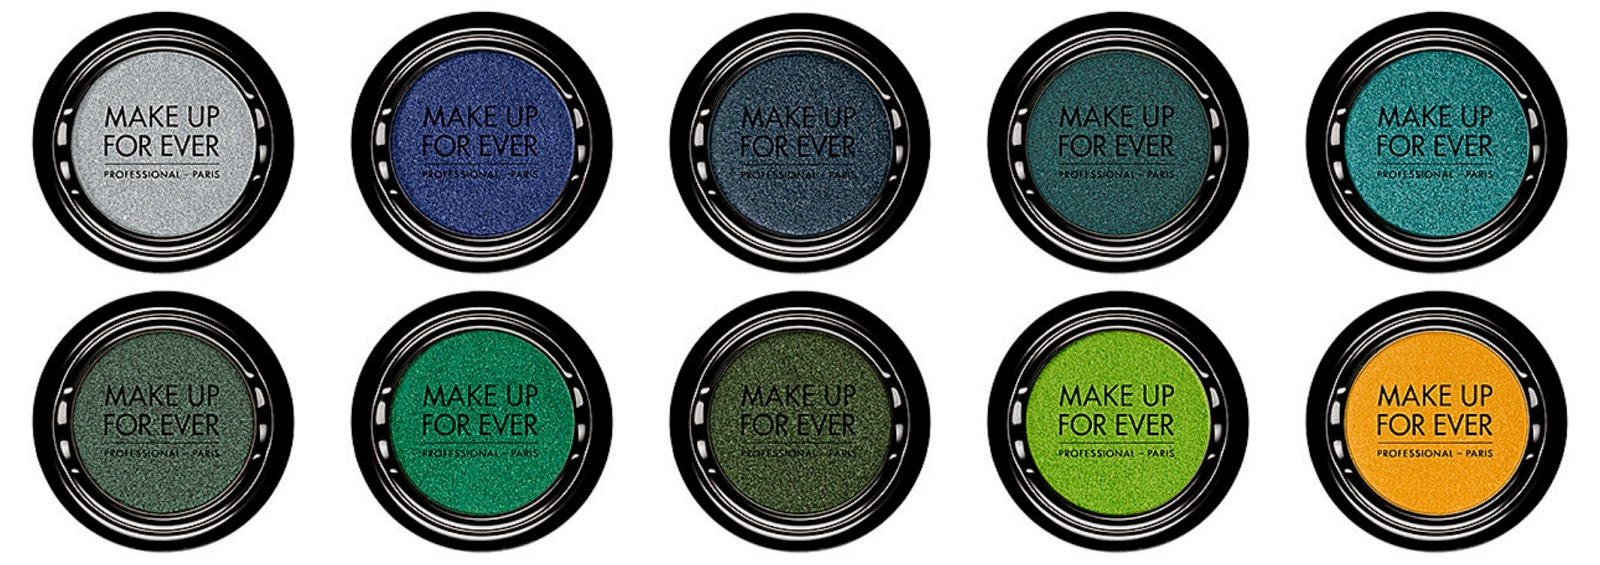 Make Up For Ever Artist Shadow Top from left: ME302 Peacock; ME304 Emerald; ME310 Fir Tree Green; ME338 Acidic Green; ME400 Buttercup  Bottom from left: ME202 Iceberg Blue; ME216 Electric Blue; ME224 Navy Blue; ME230 Peacock Blue; ME232 Turquoise Blue